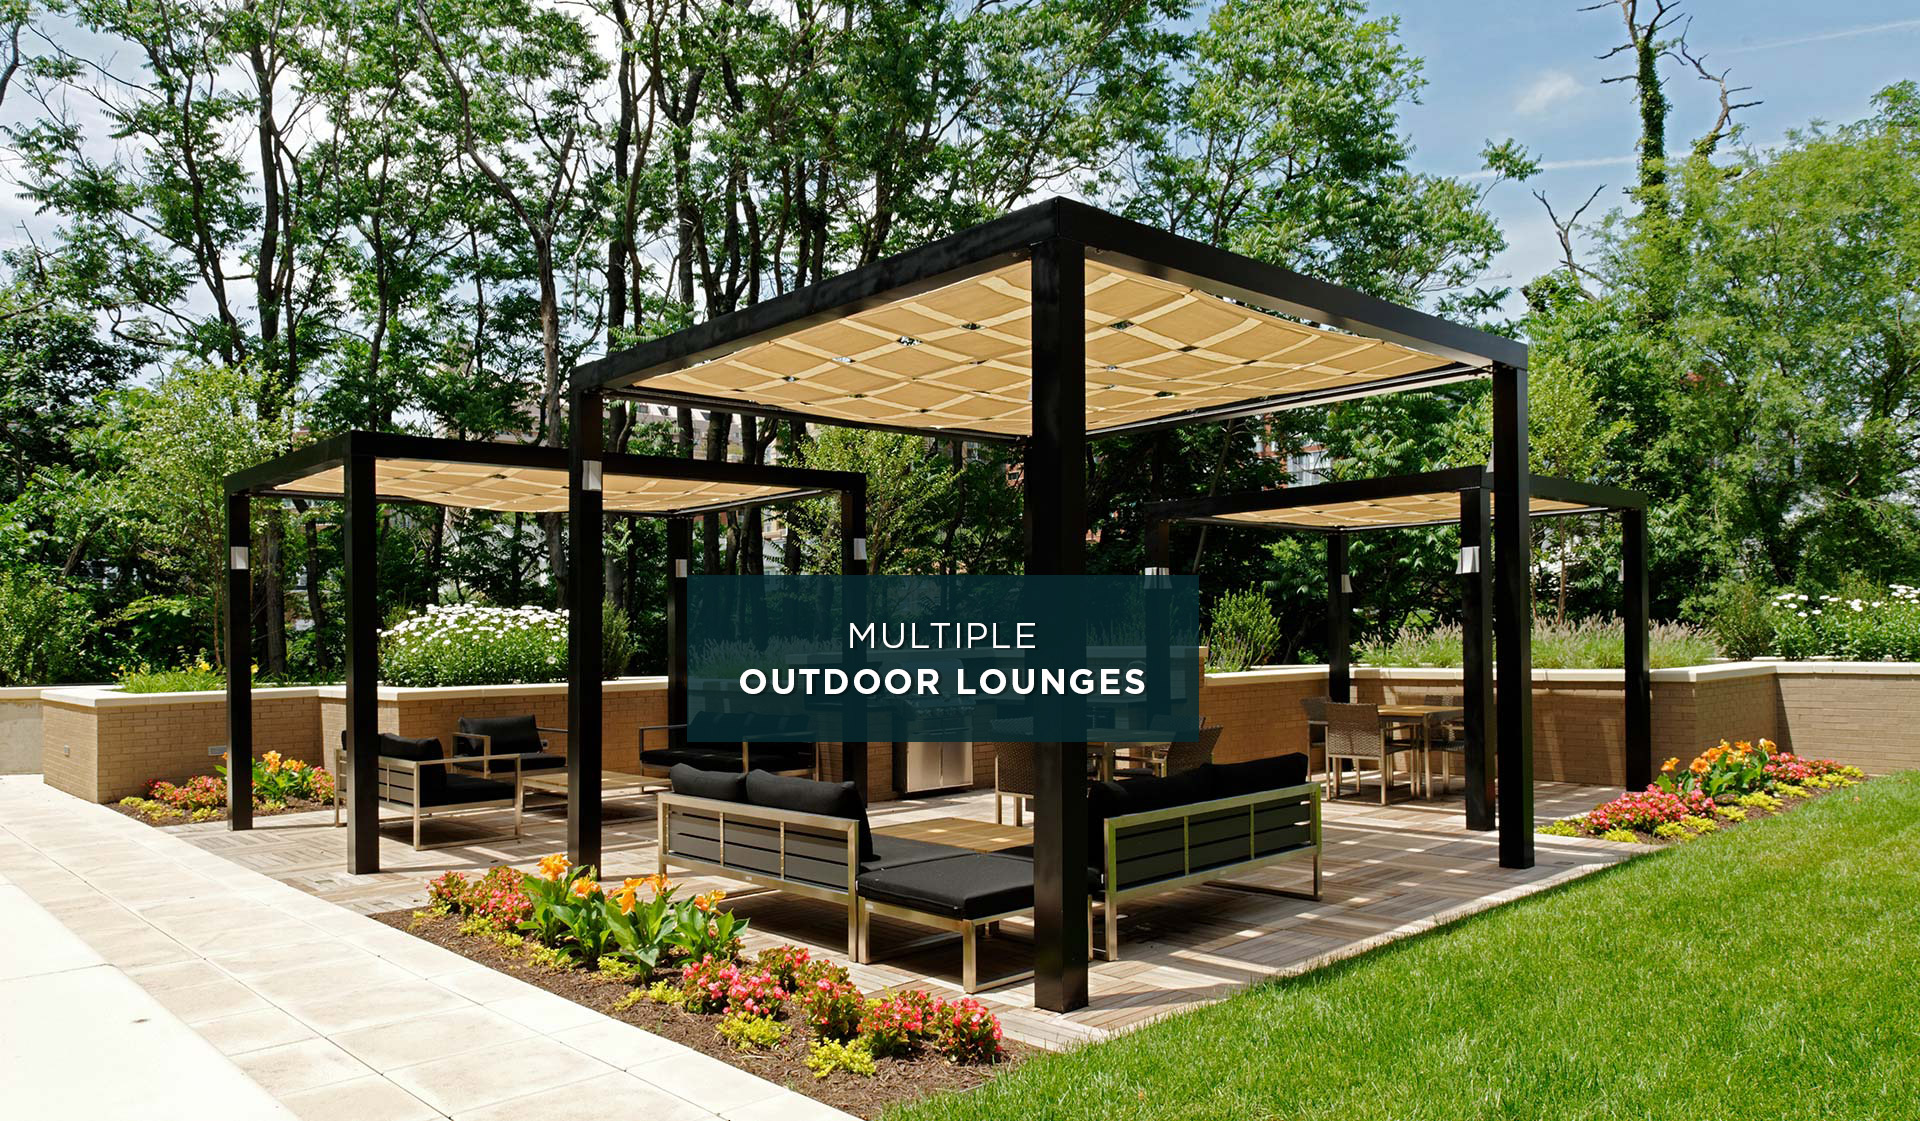 Avery Row - Outdoor Lounge - Alrington, VA